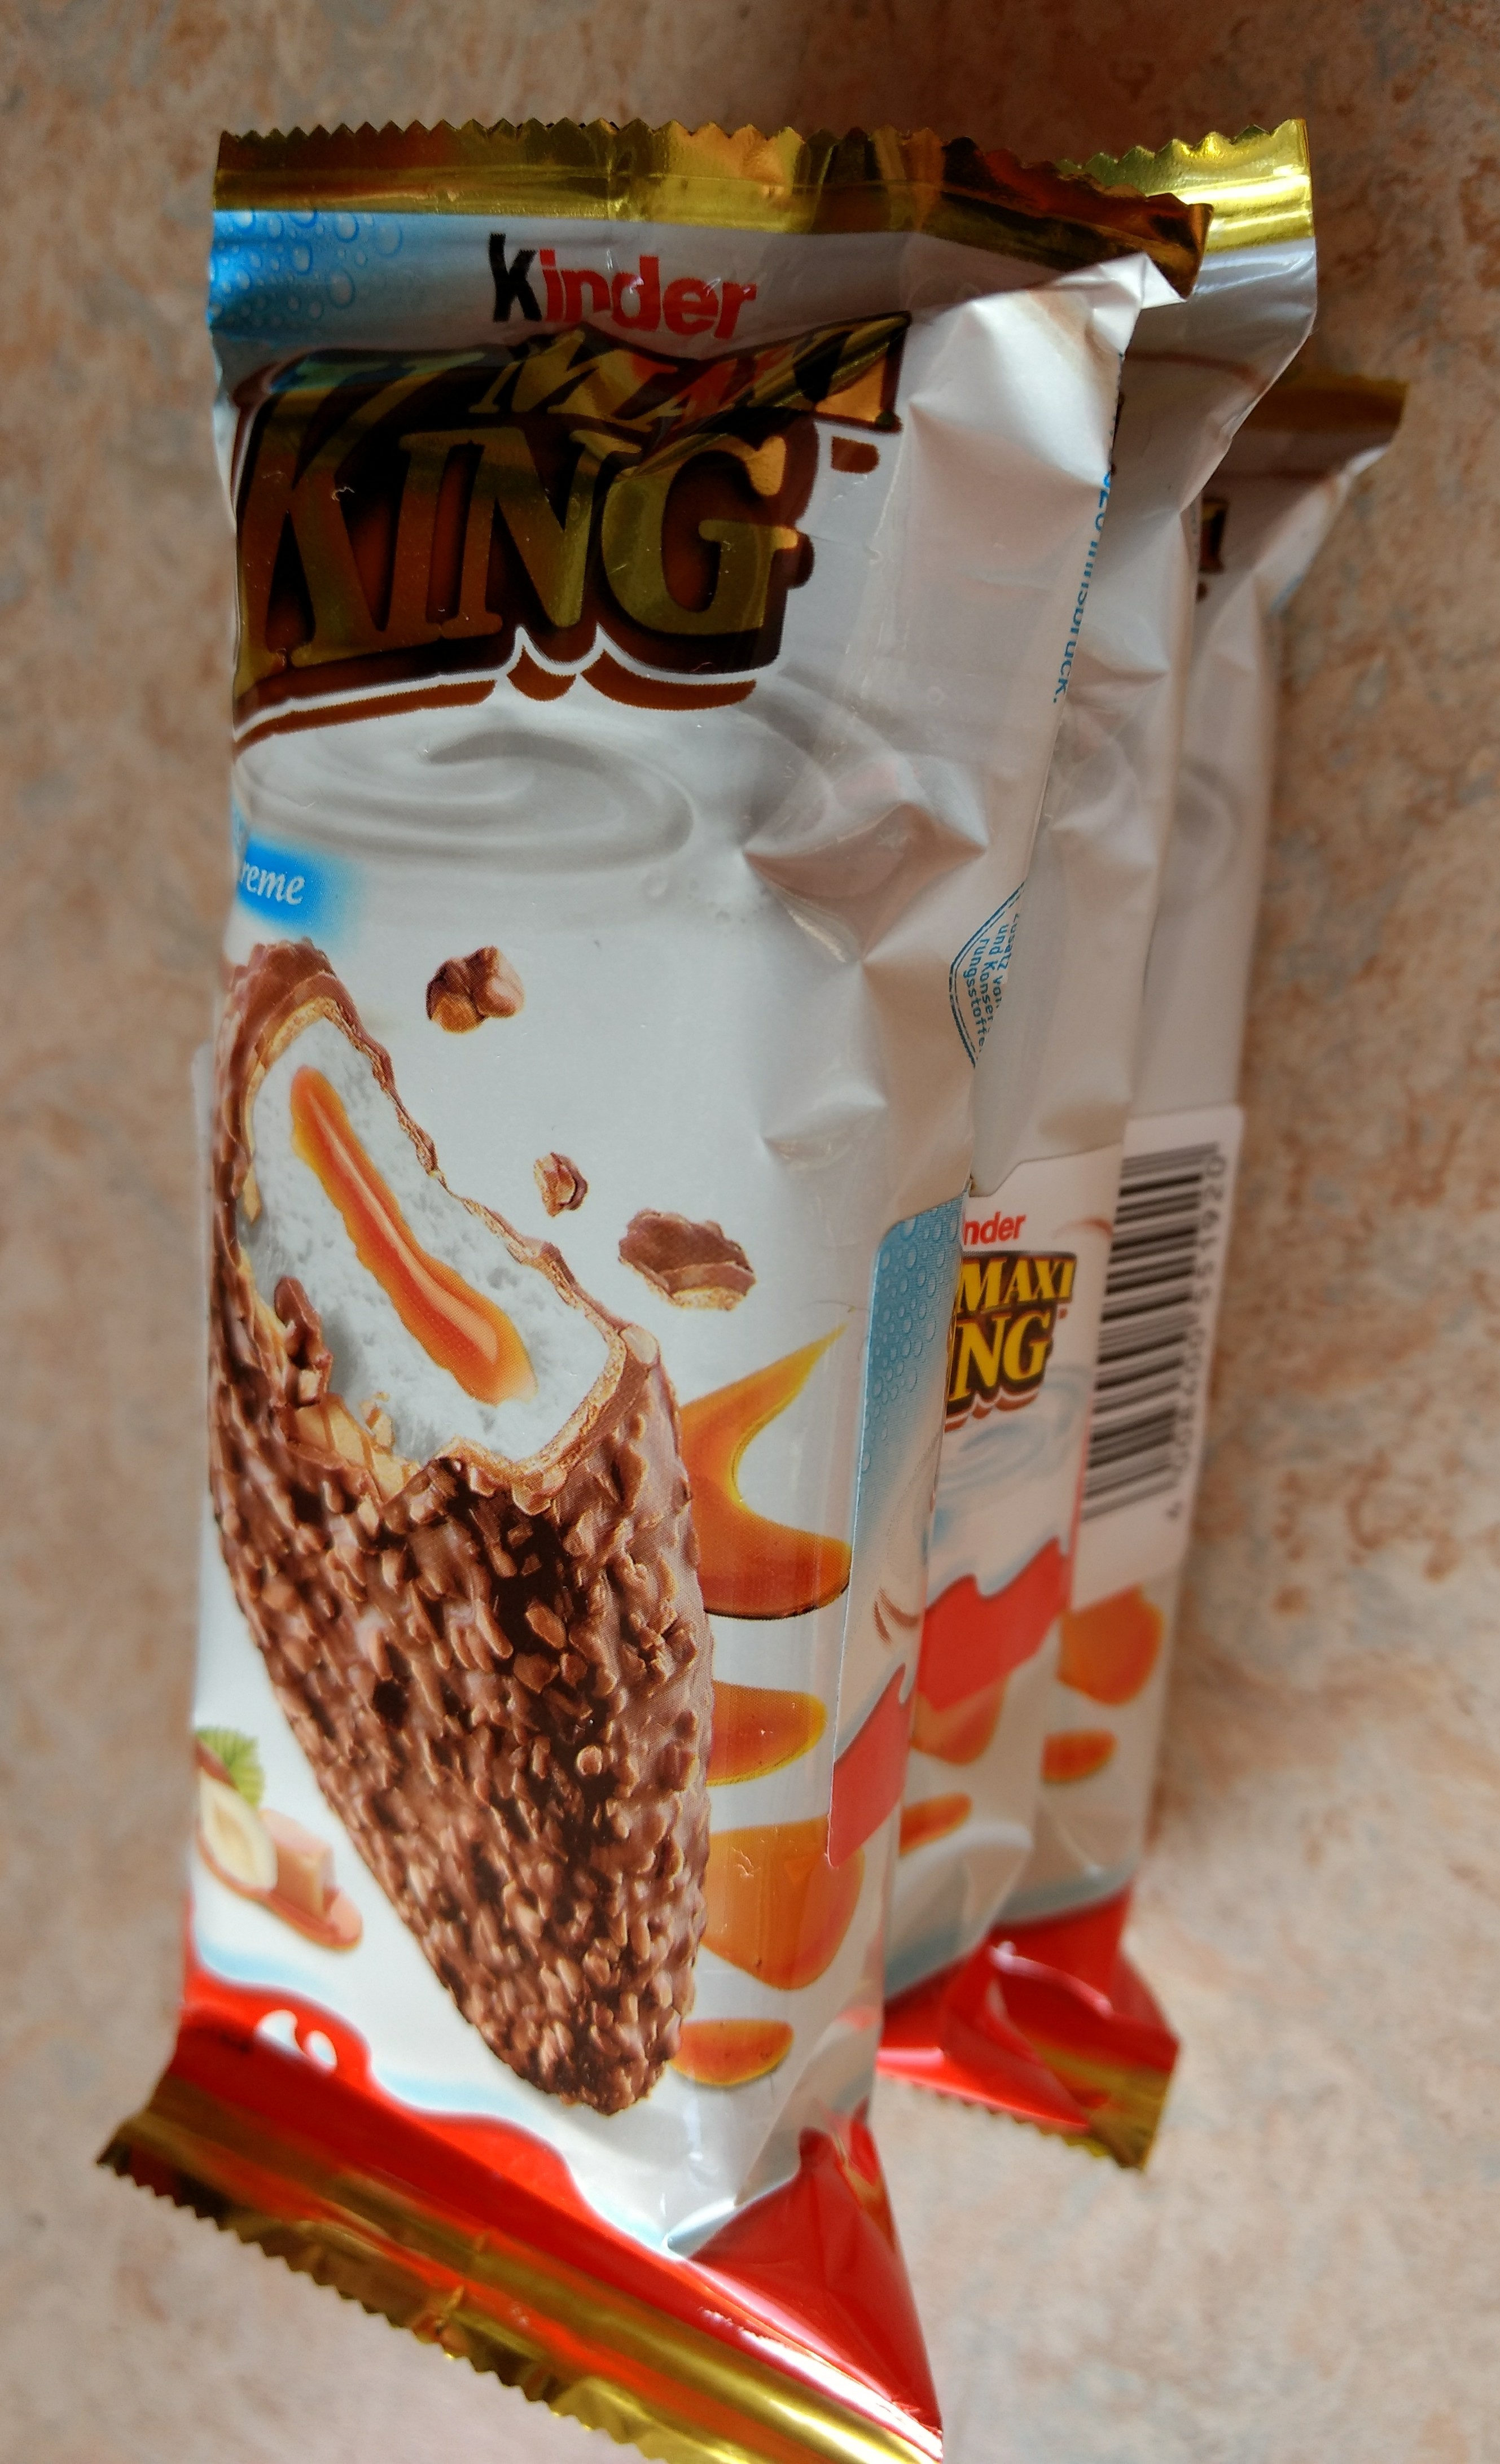 Maxi King - Product